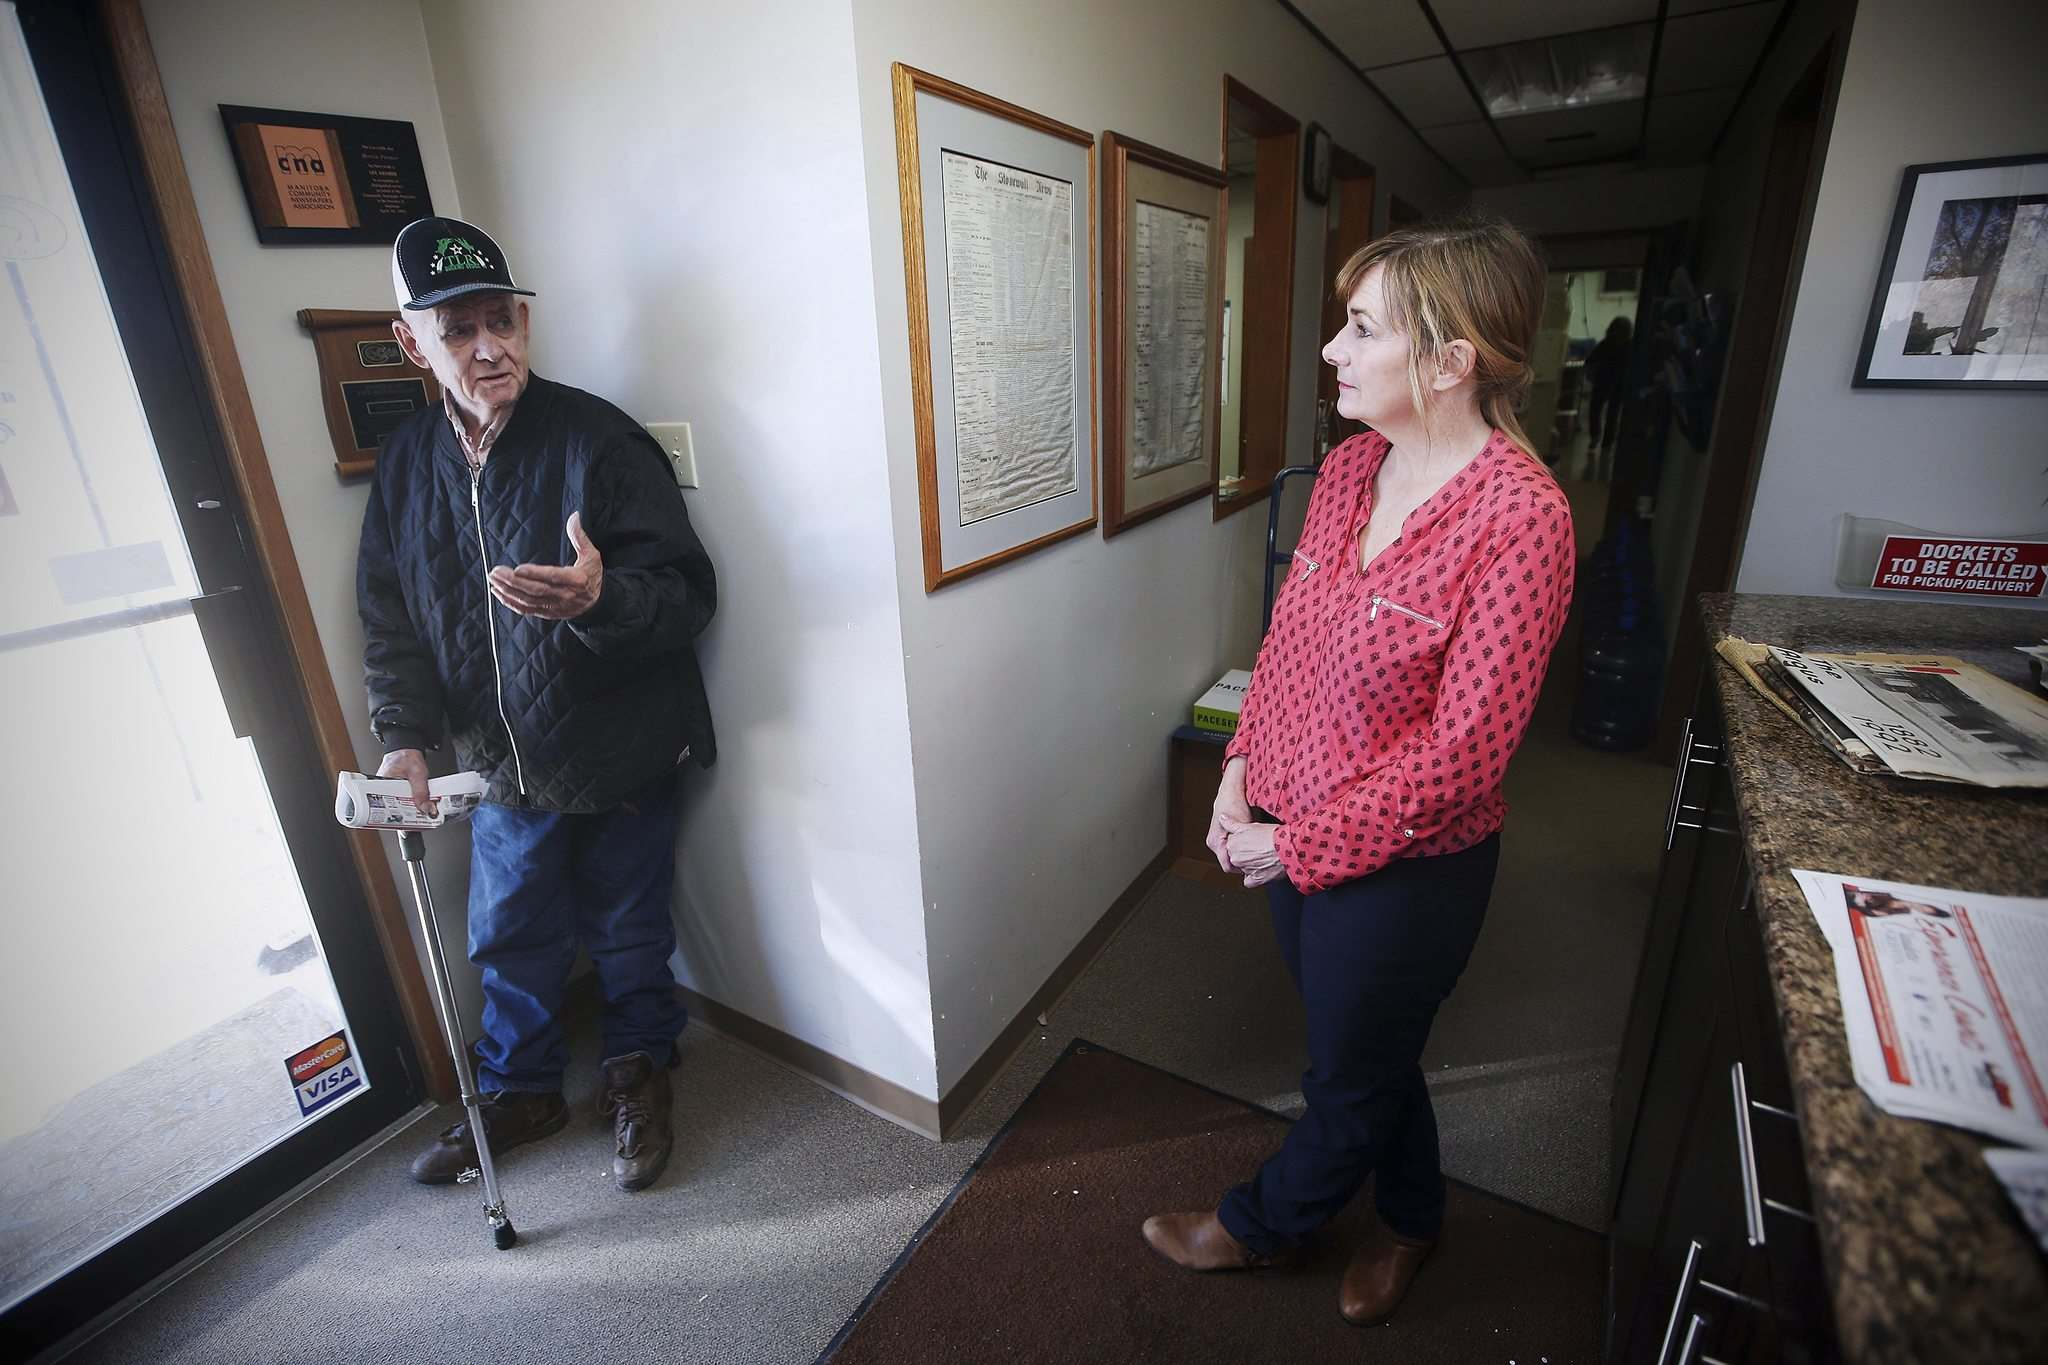 JOHN WOODS / WINNIPEG FREE PRESS</p><p>Lana Meier chats with local farmer Garnet Laing who dropped in to pick up a paper at the Meier's office in Stonewall Wednesday.</p>